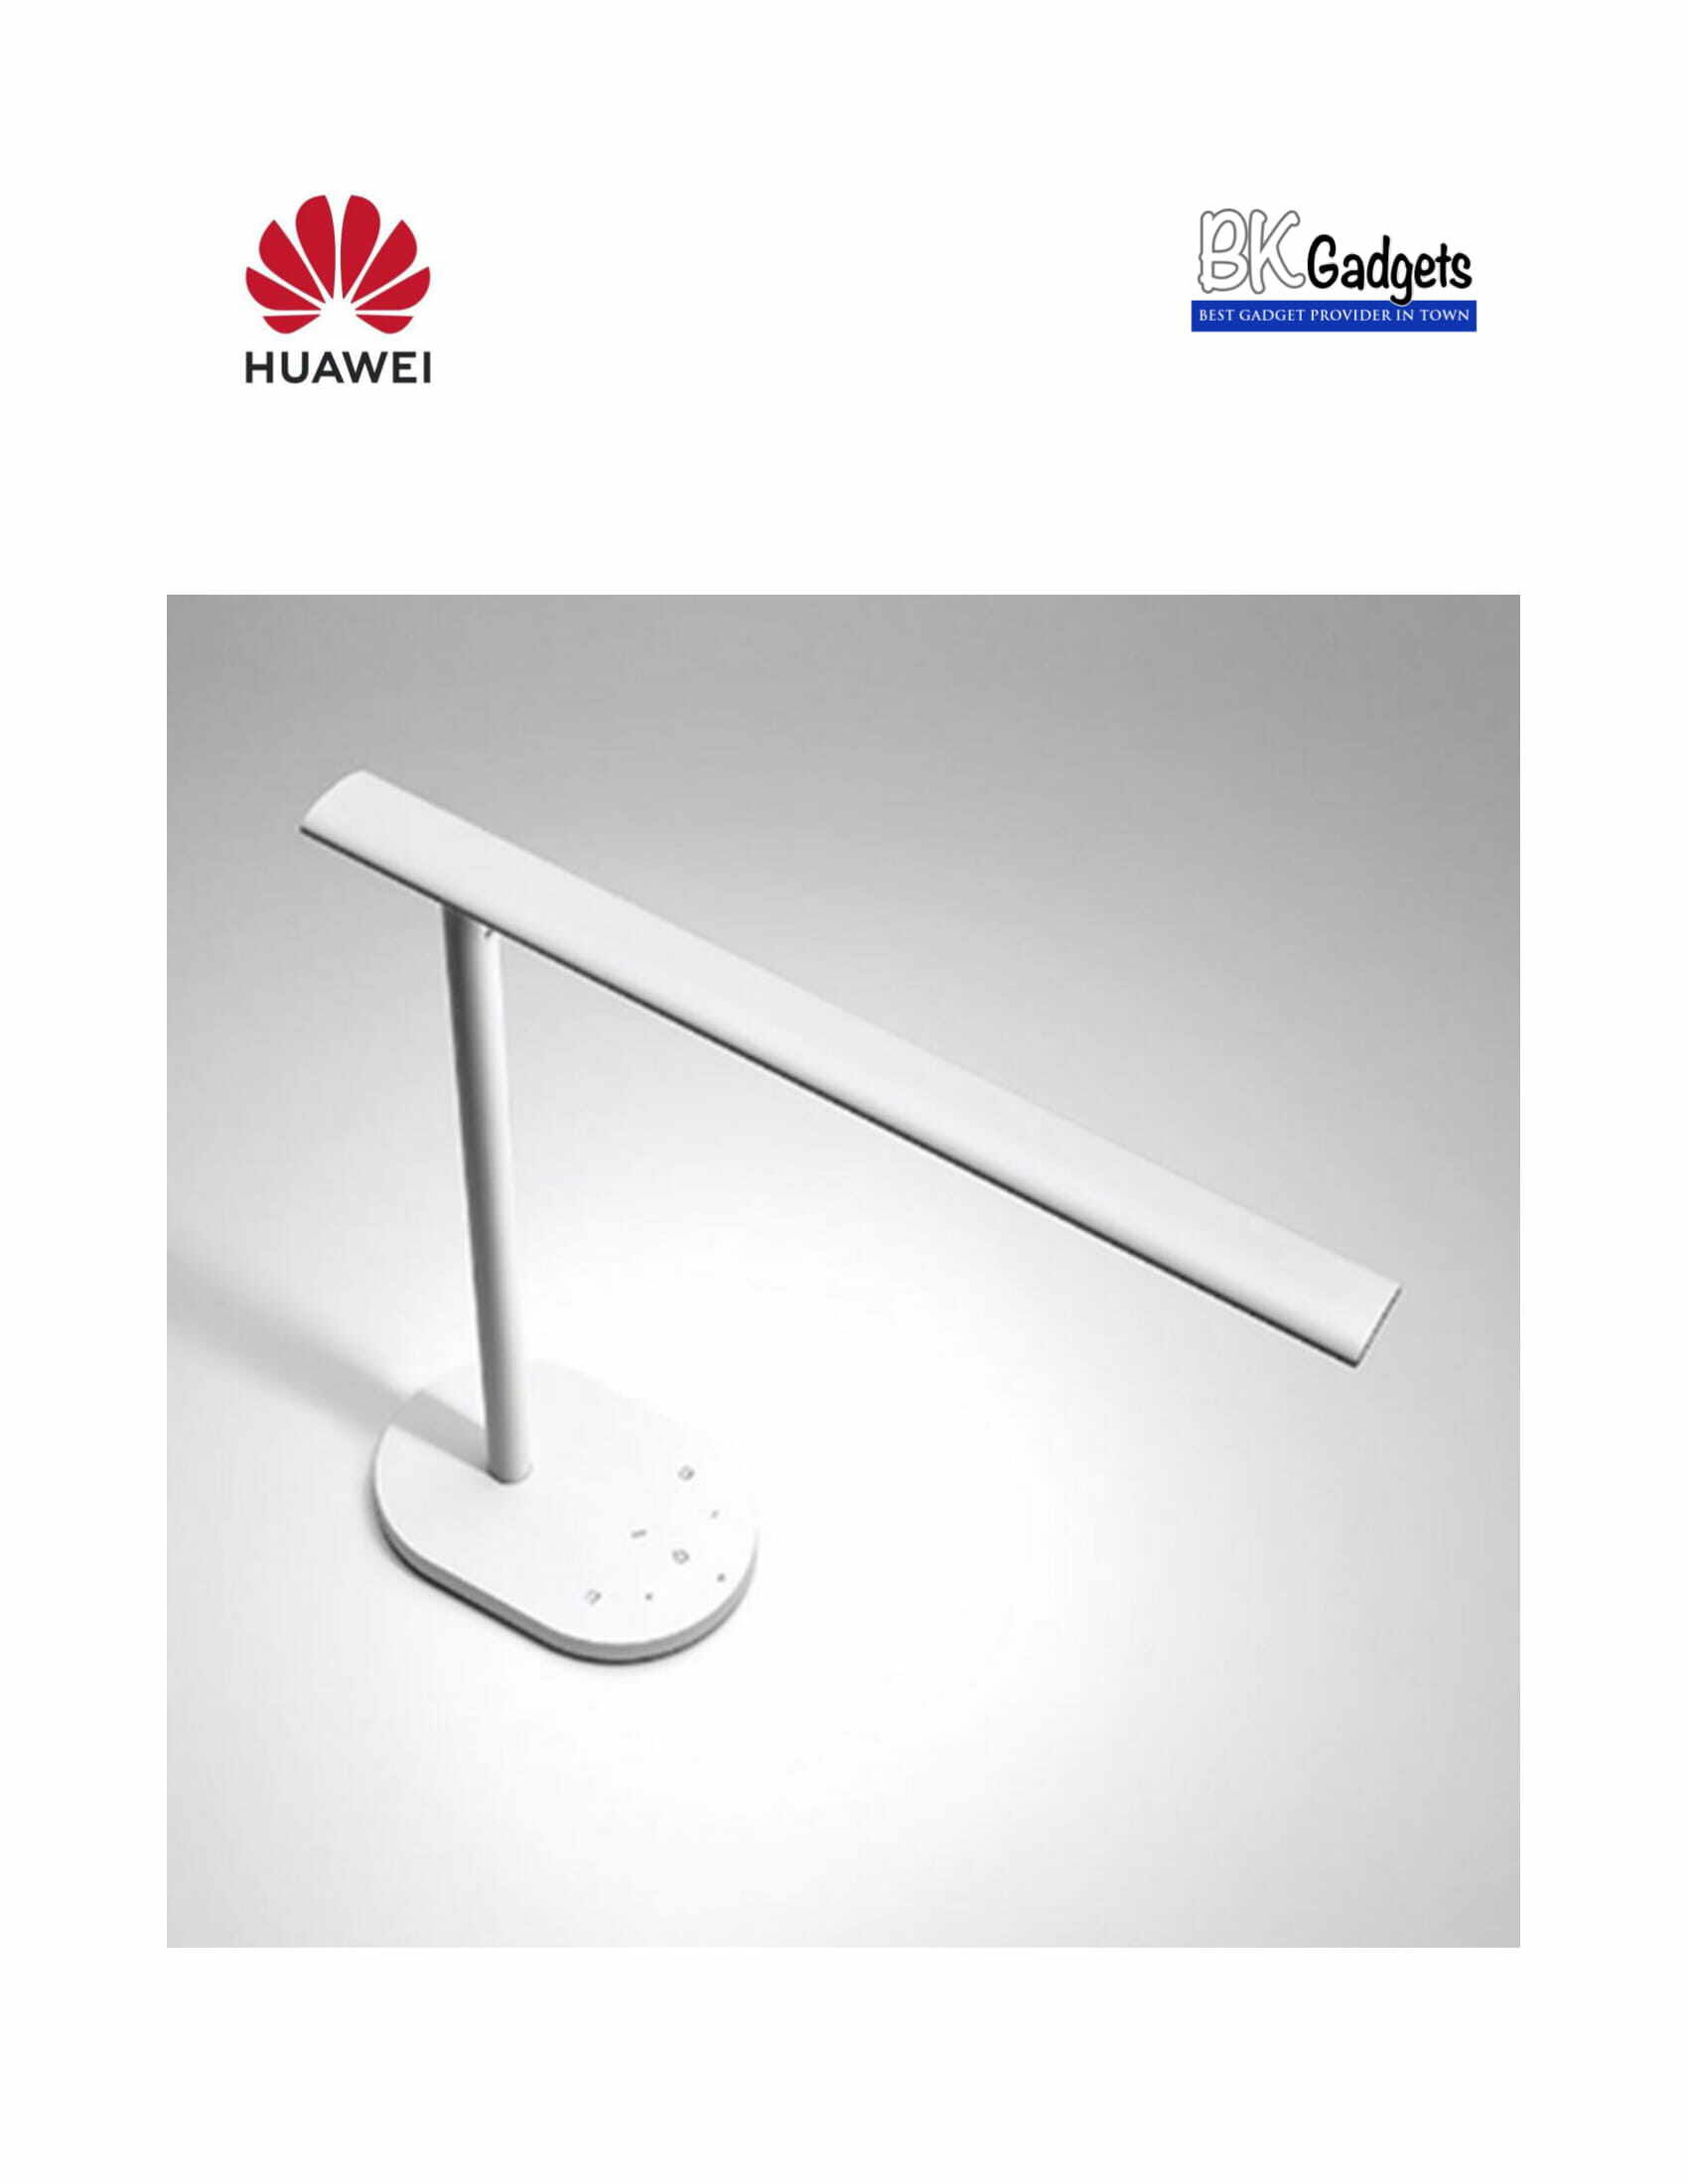 HUAWEI OPPLE Intelligent Reading Writing Desk Light + APP Remote Control + 3 Scene Modes